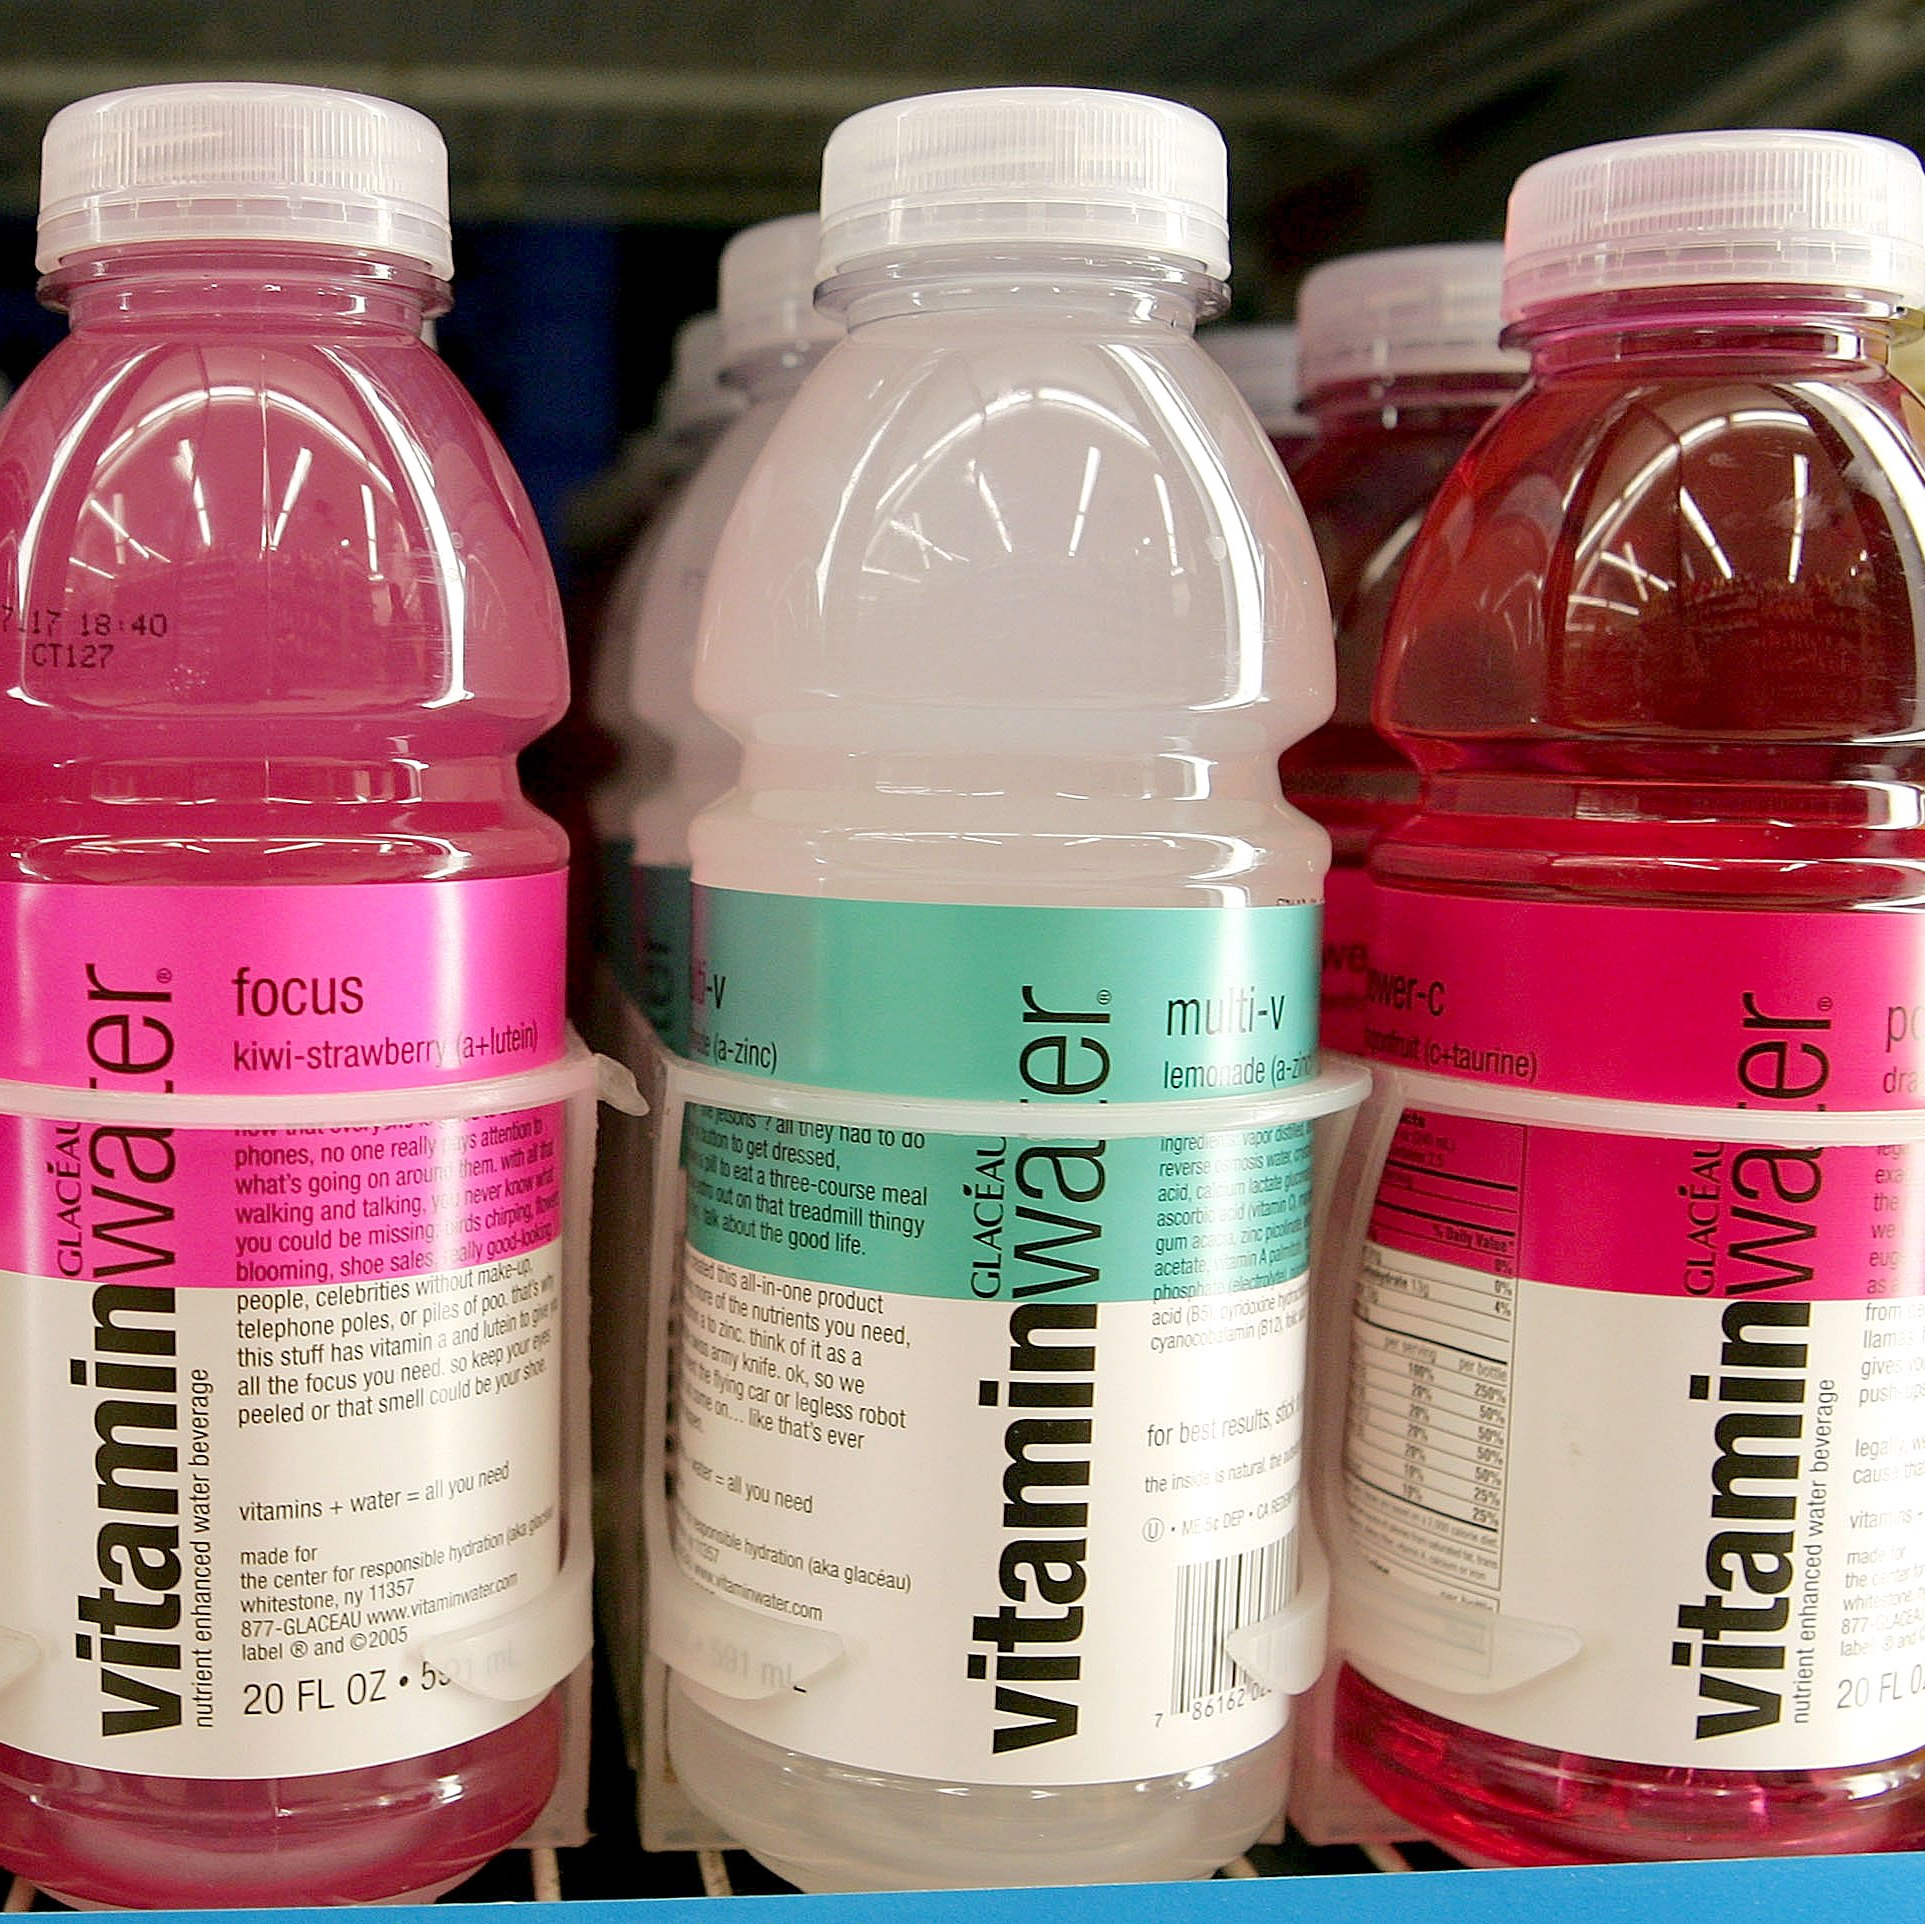 Vitaminwater Will Give $100,000 to Person Who Can Go Without Their Smartphone for a Year